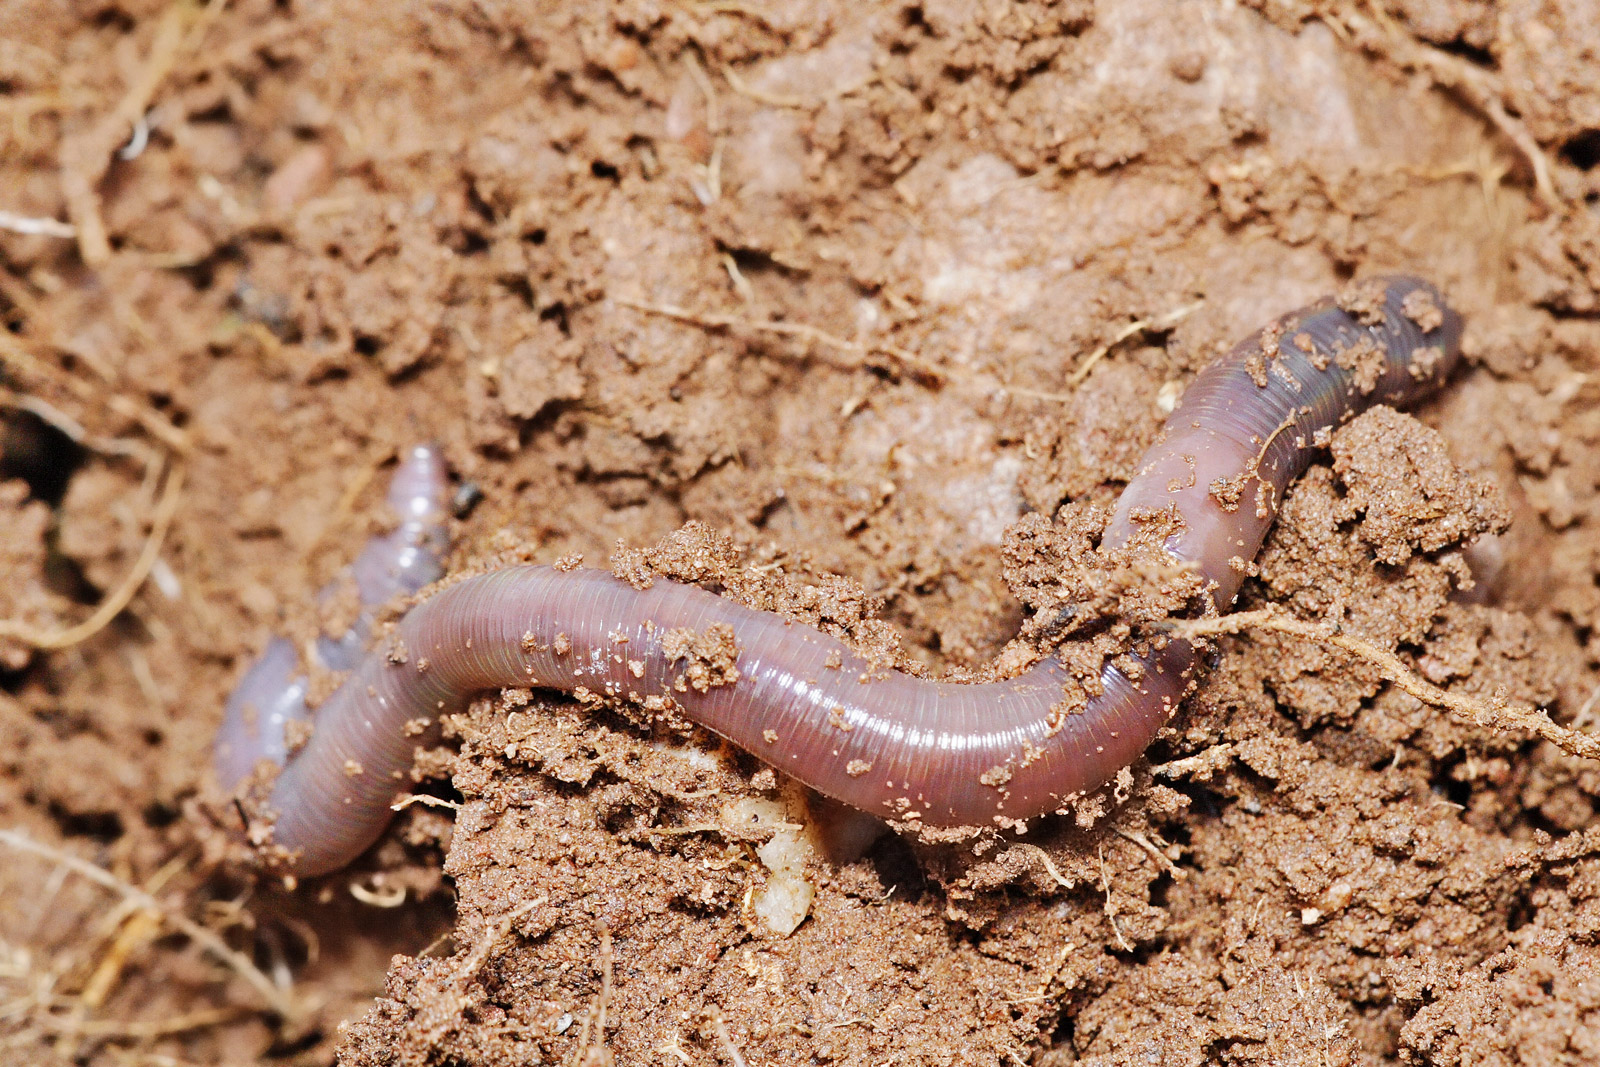 Earthworms are a good example